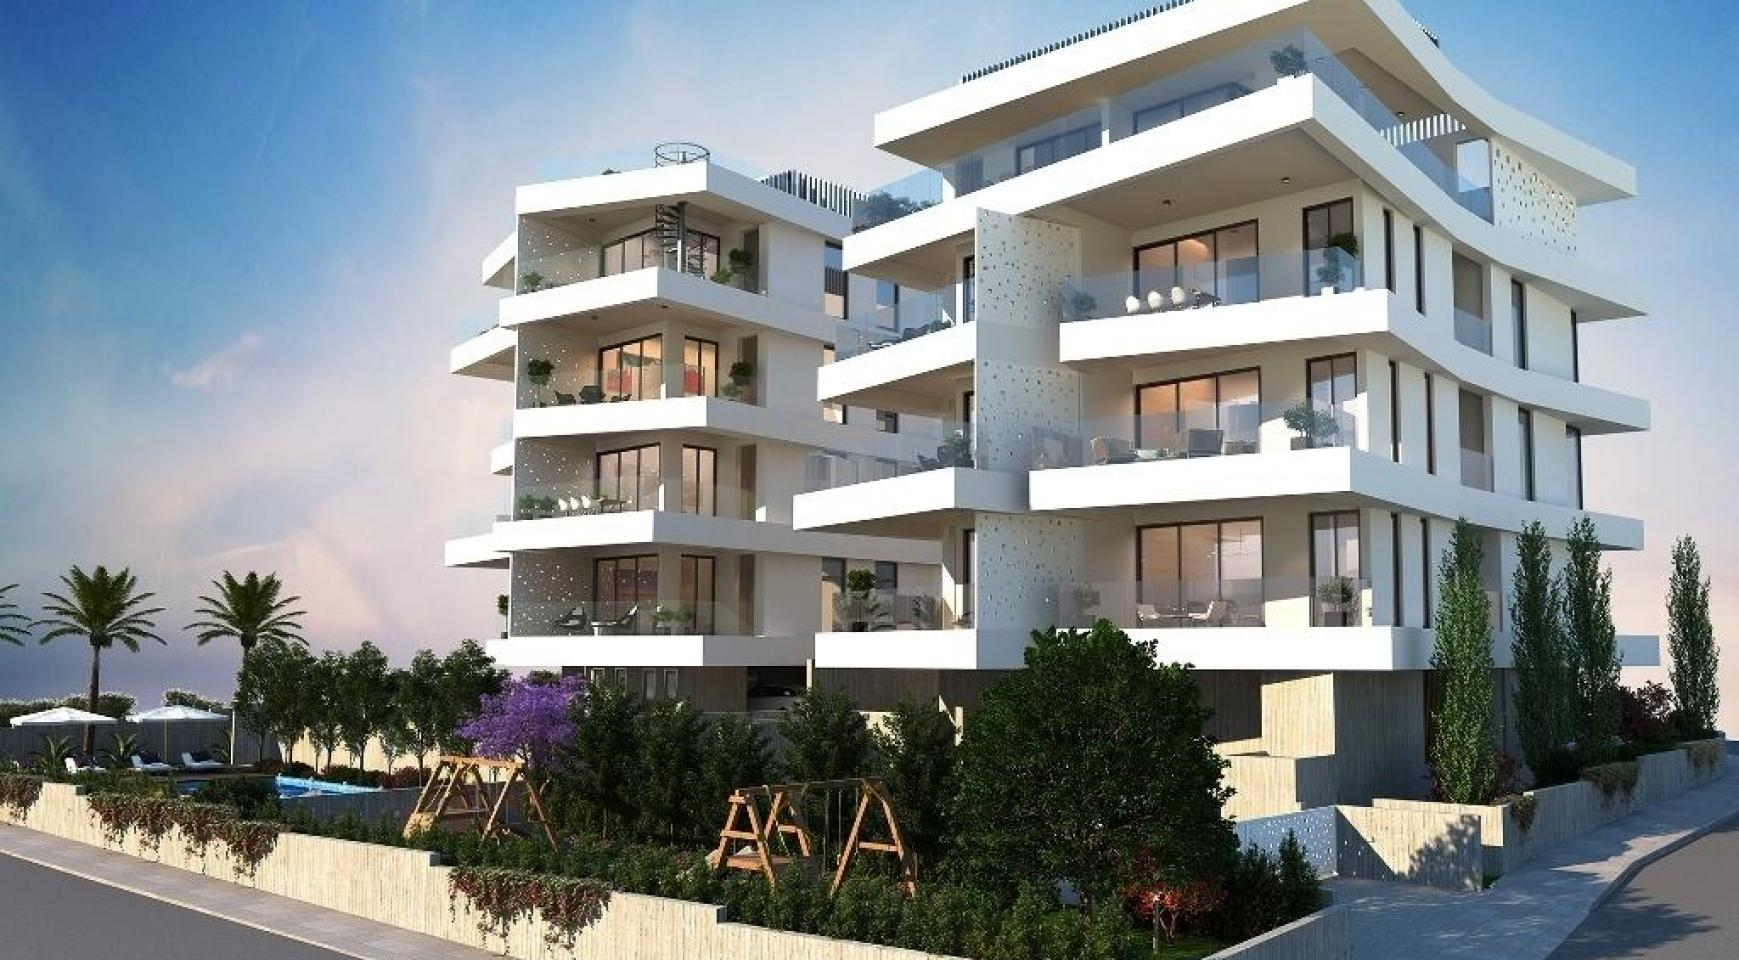 New 2 Bedroom Apartment in a Contemporary Building in Germasogeia Area - 6